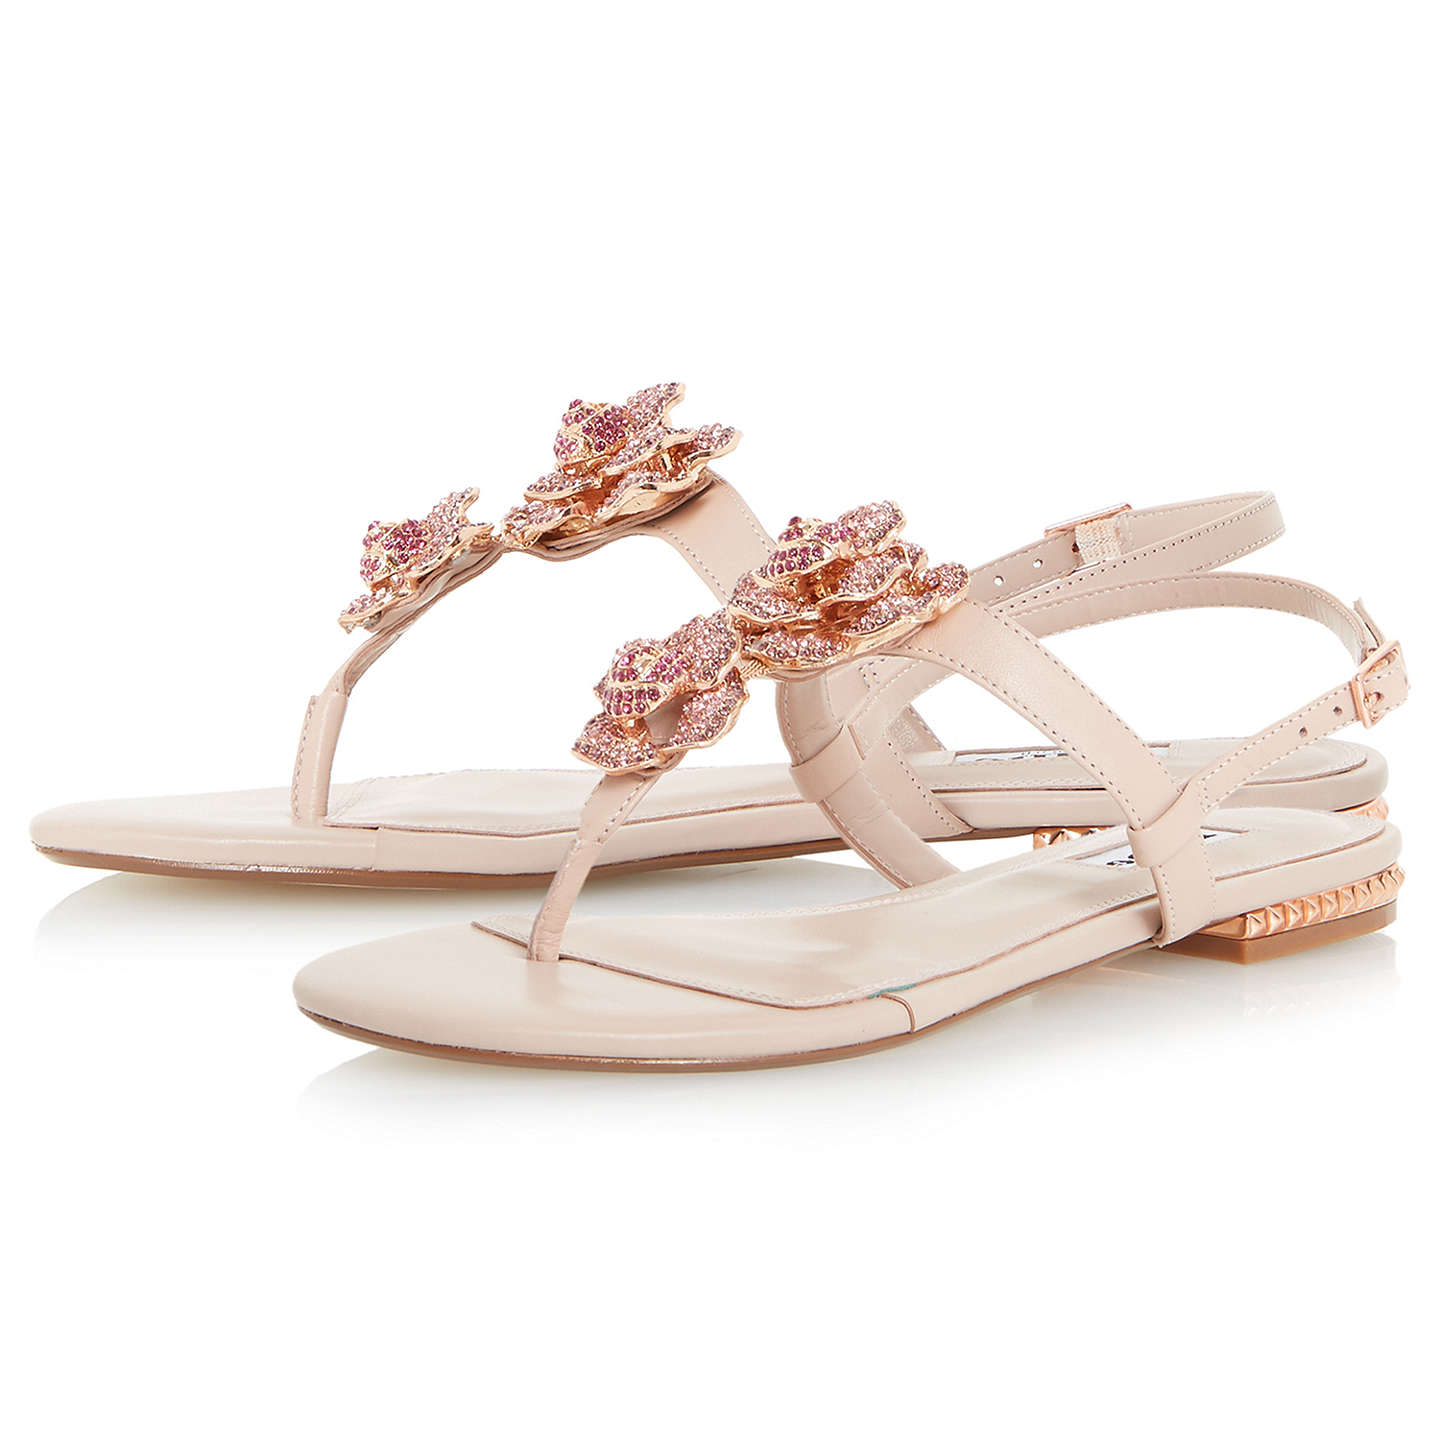 BuyDune Mulligan Floral Jewel Toe Post Sandals, Blush, 3 Online at johnlewis.com